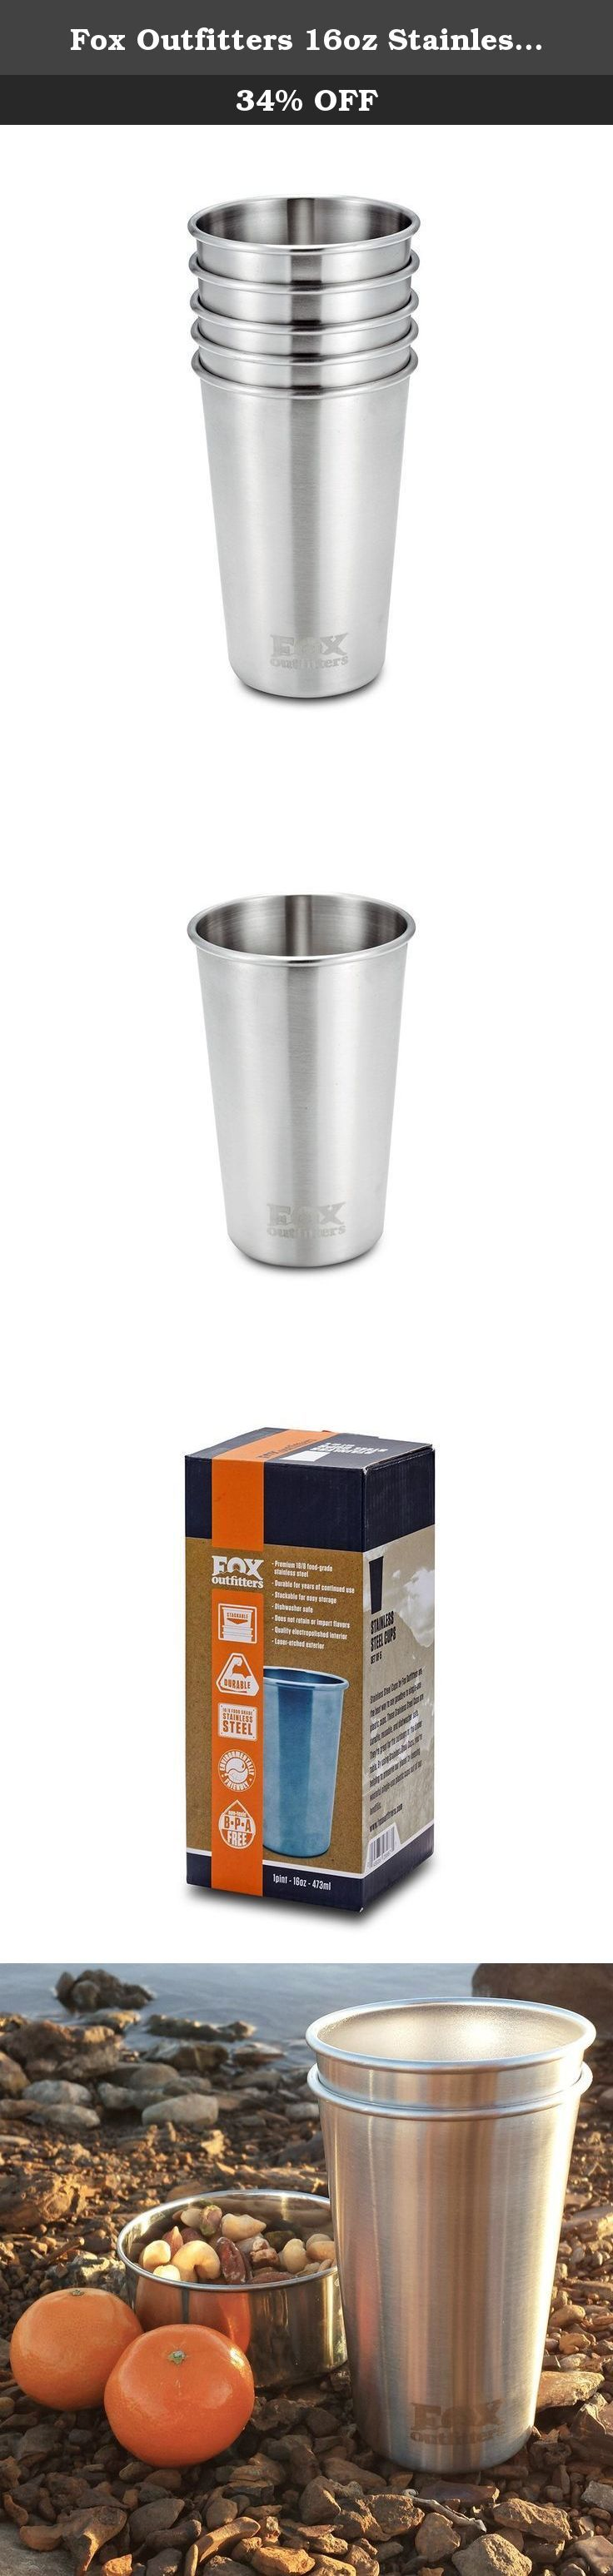 Fox Outfitters 16oz Stainless Steel Pint Cups (Pack of 5). Perfect for a drink of water, juice, iced coffee, beer, smoothies, milk or any other beverage, Fox Outfitters 16 oz Stainless Steel pint cups are the favored multi-use cup for any occasion. Forget those wasteful red plastic cups. Grab your stainless steel cups the next time you head out for a picnic, concert, BBQ, beach trip or just have friend over for dinner. With a stackable design, these cups are easy to toss into your…